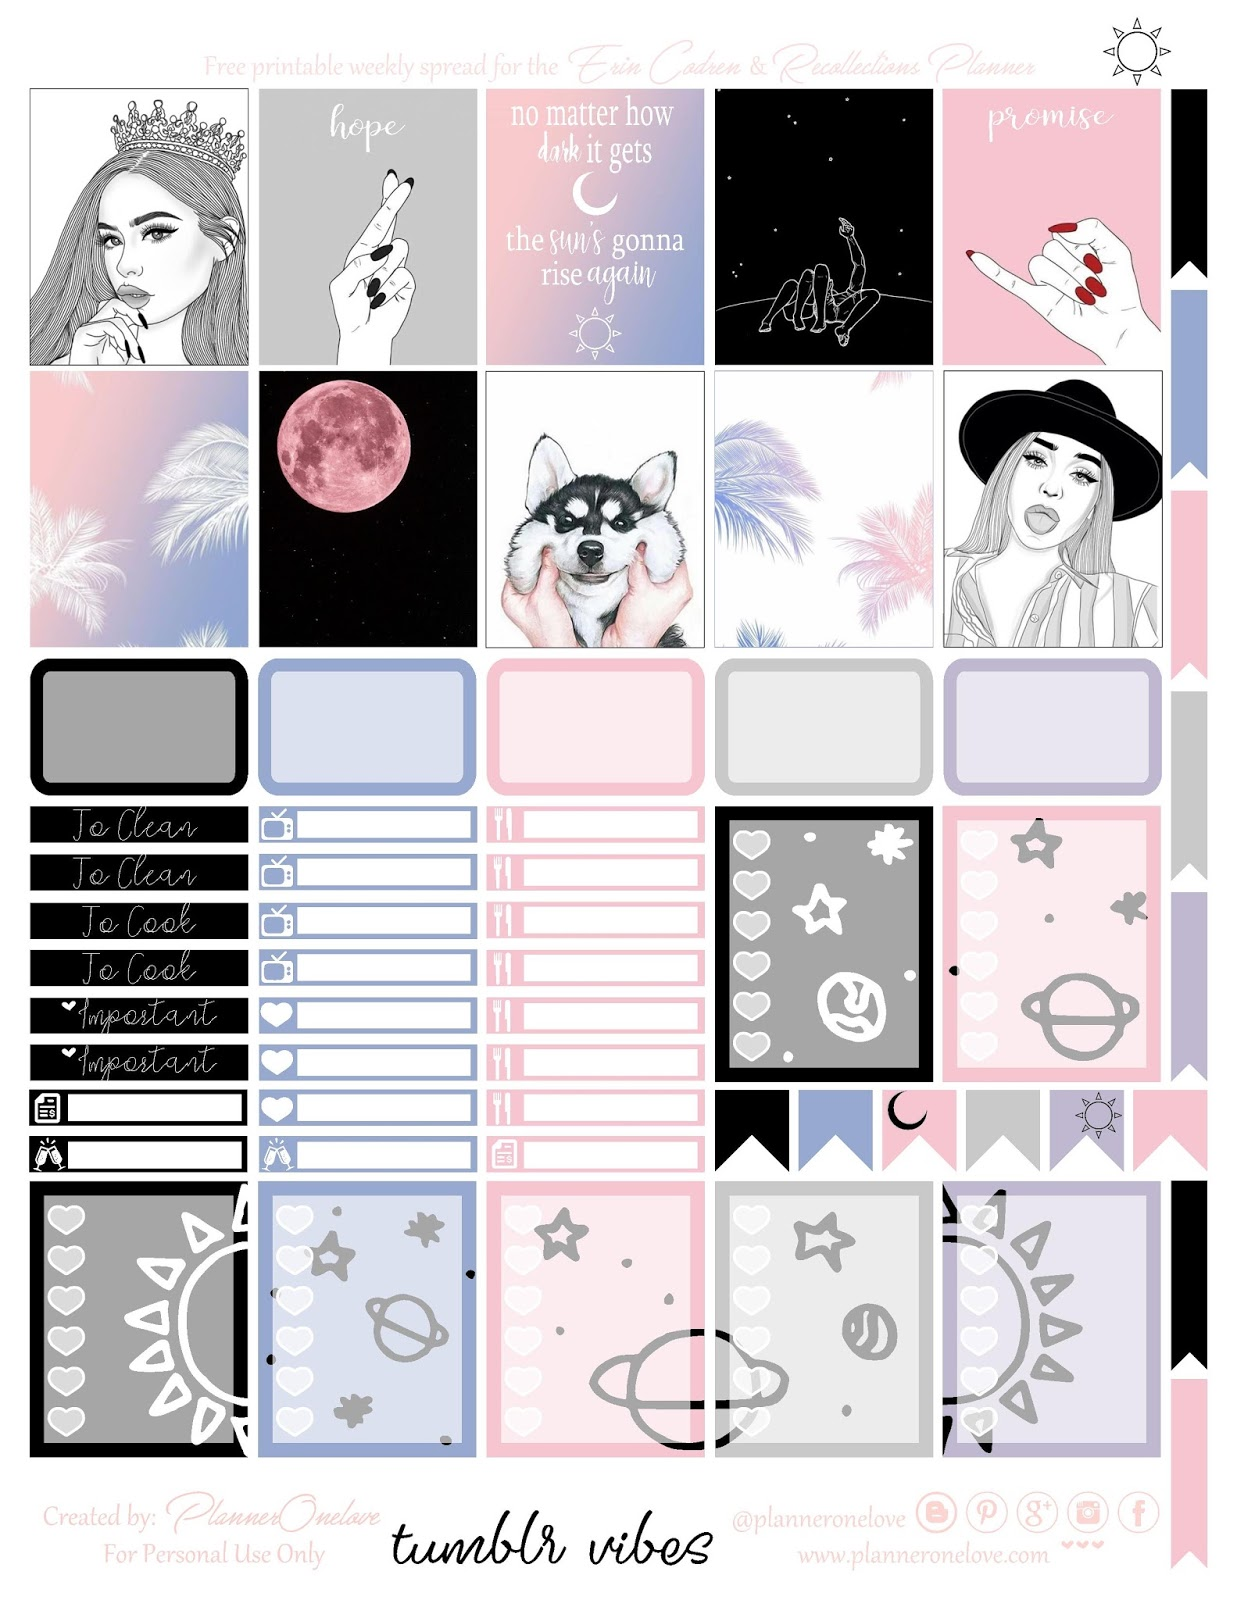 image regarding Tumblr Stickers Printable named cost-free tumblr vibes printable planner stickers for the Erin